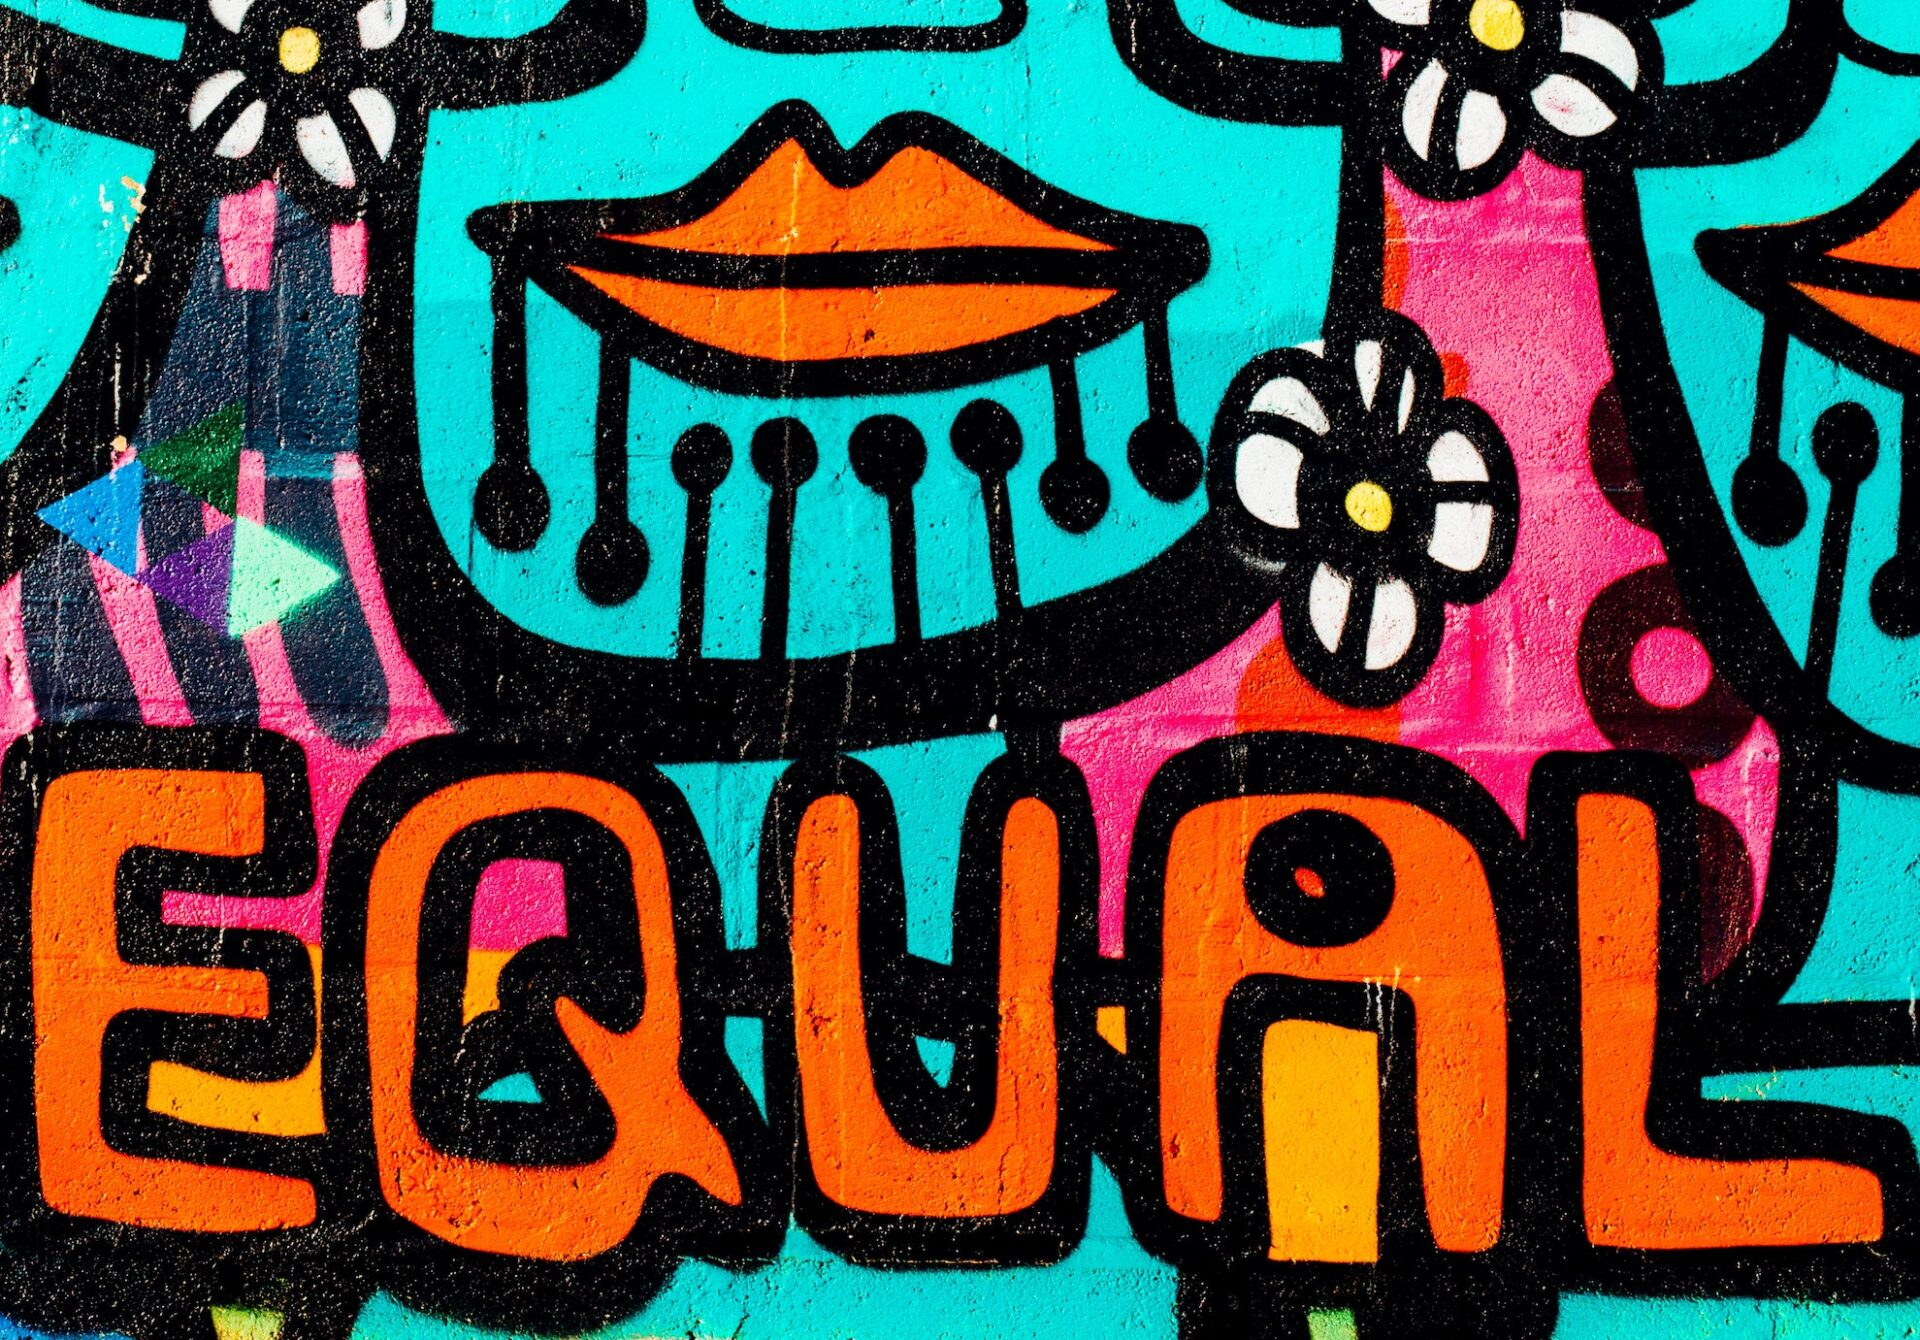 colourful mural on a brick wall with the word Equal as the focal point